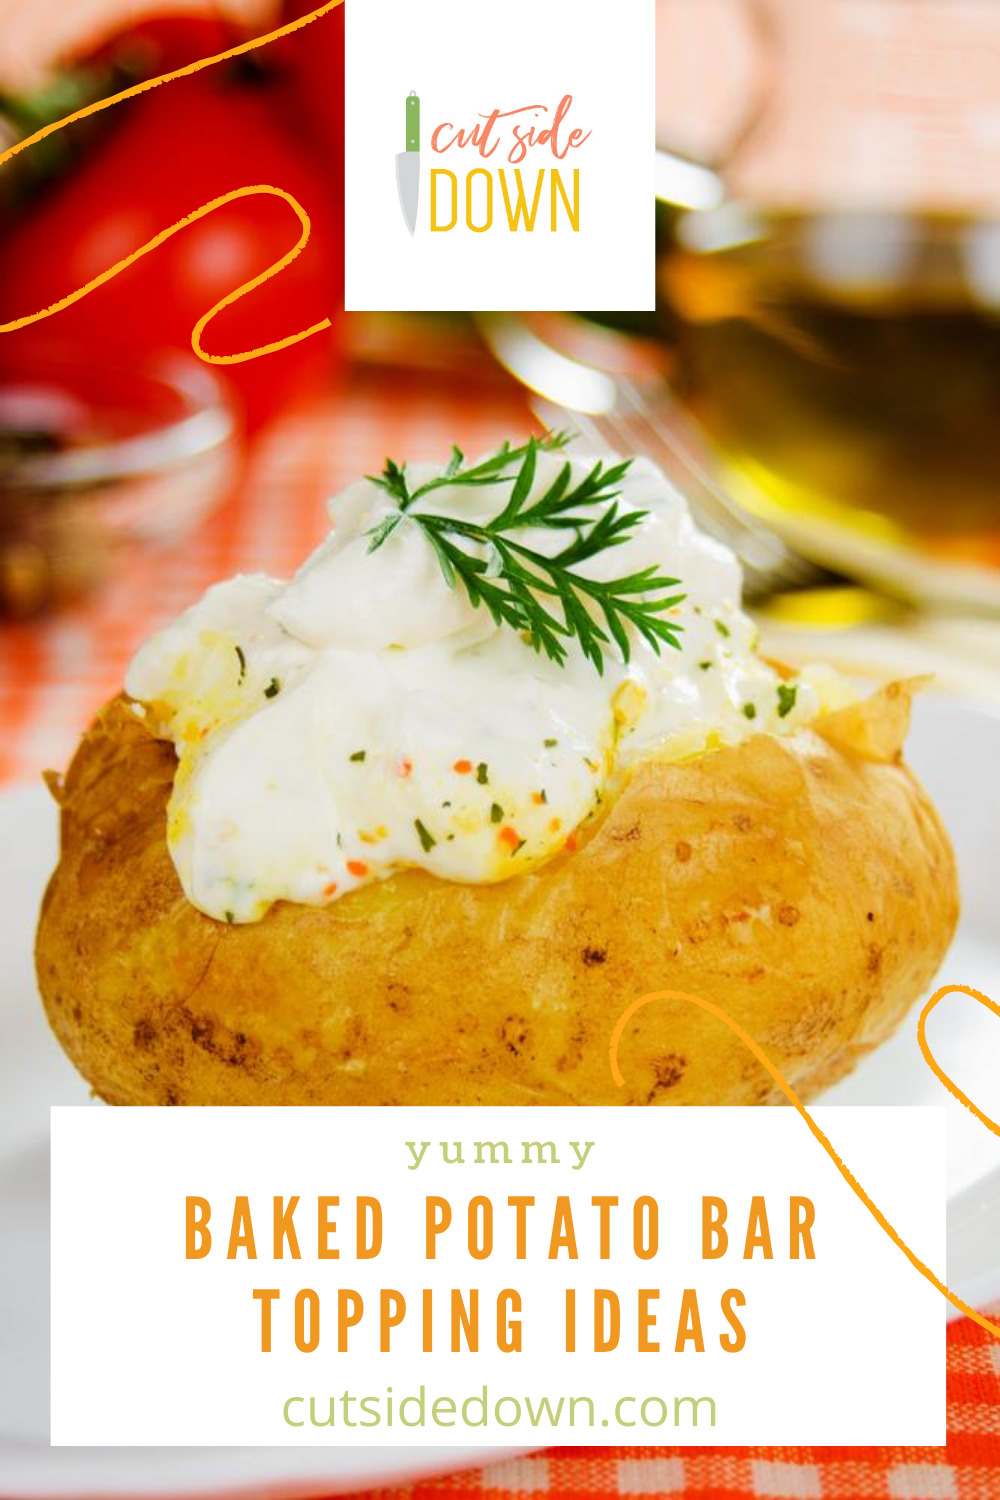 If you have to feed a large group, the a potato bar is where it's at! If you're putting one together, then you've got to have all the best toppings. Come check it out! #PotatoBarToppingIdeas #DIYPotatoBar #PotatoBarRecipes